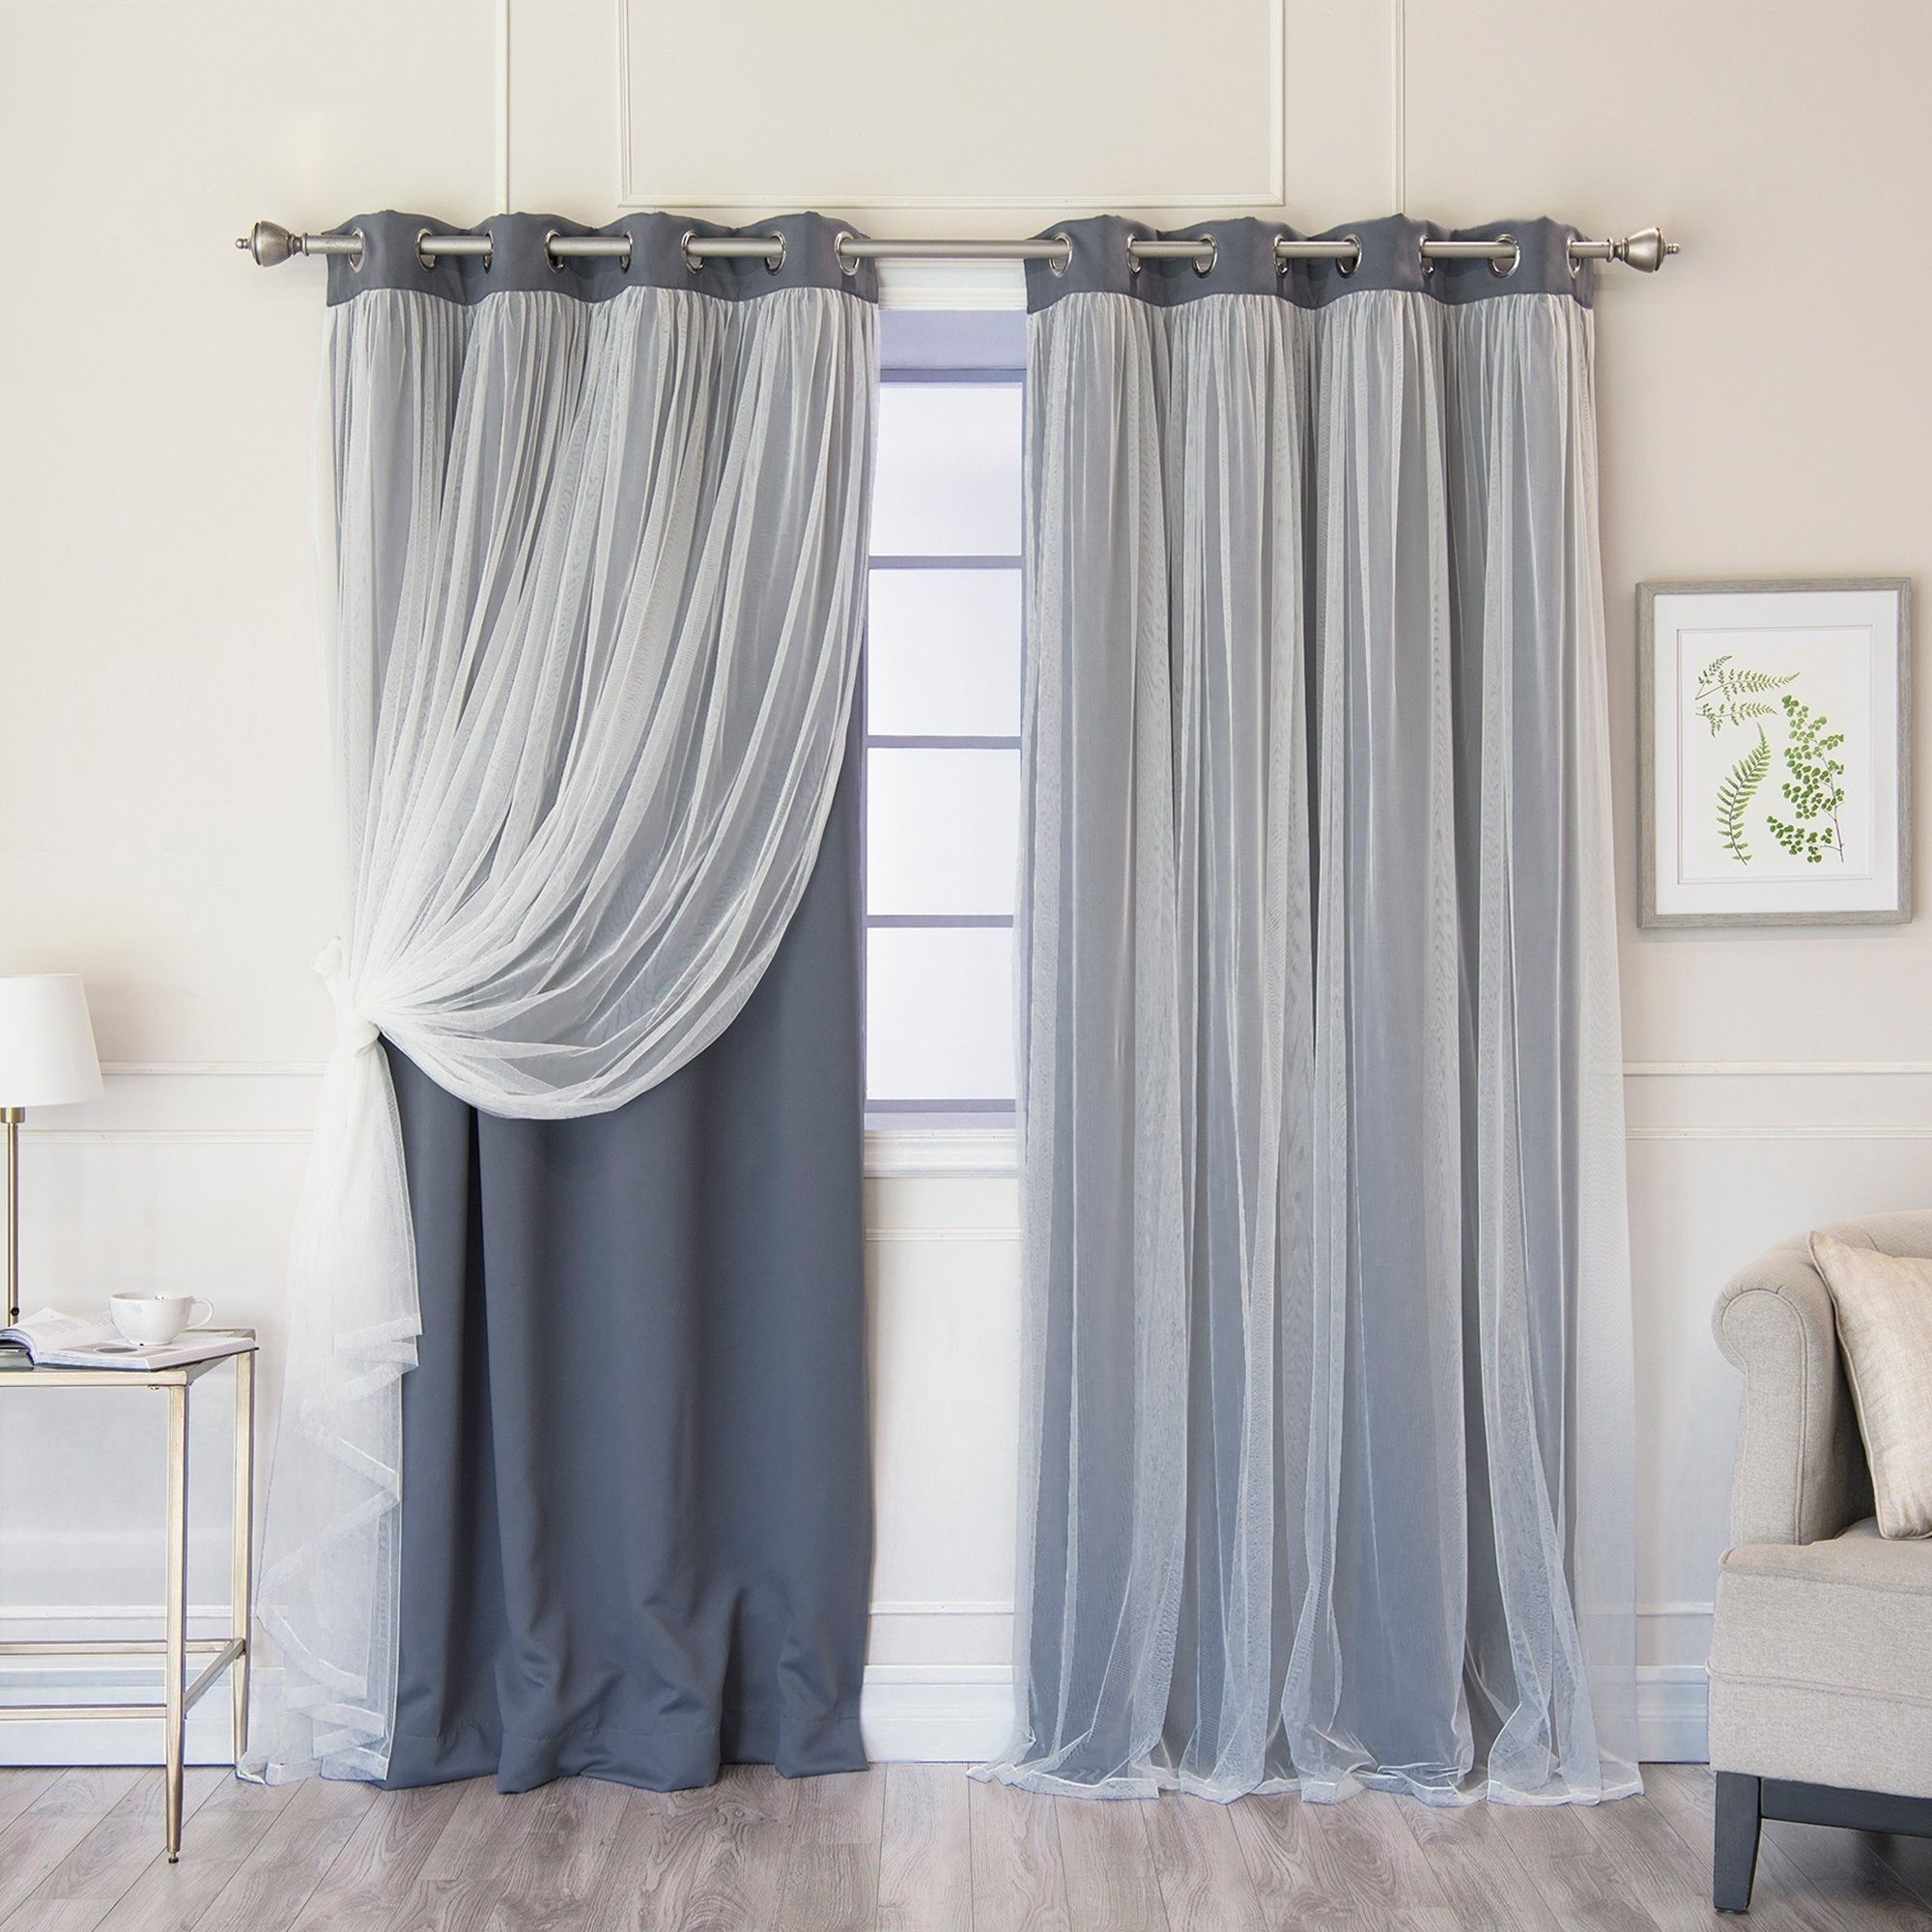 Overstock Com Online Shopping Bedding Furniture Electronics Jewelry Clothing More In 2020 Living Room Decor Curtains Cool Curtains Curtains Living Room